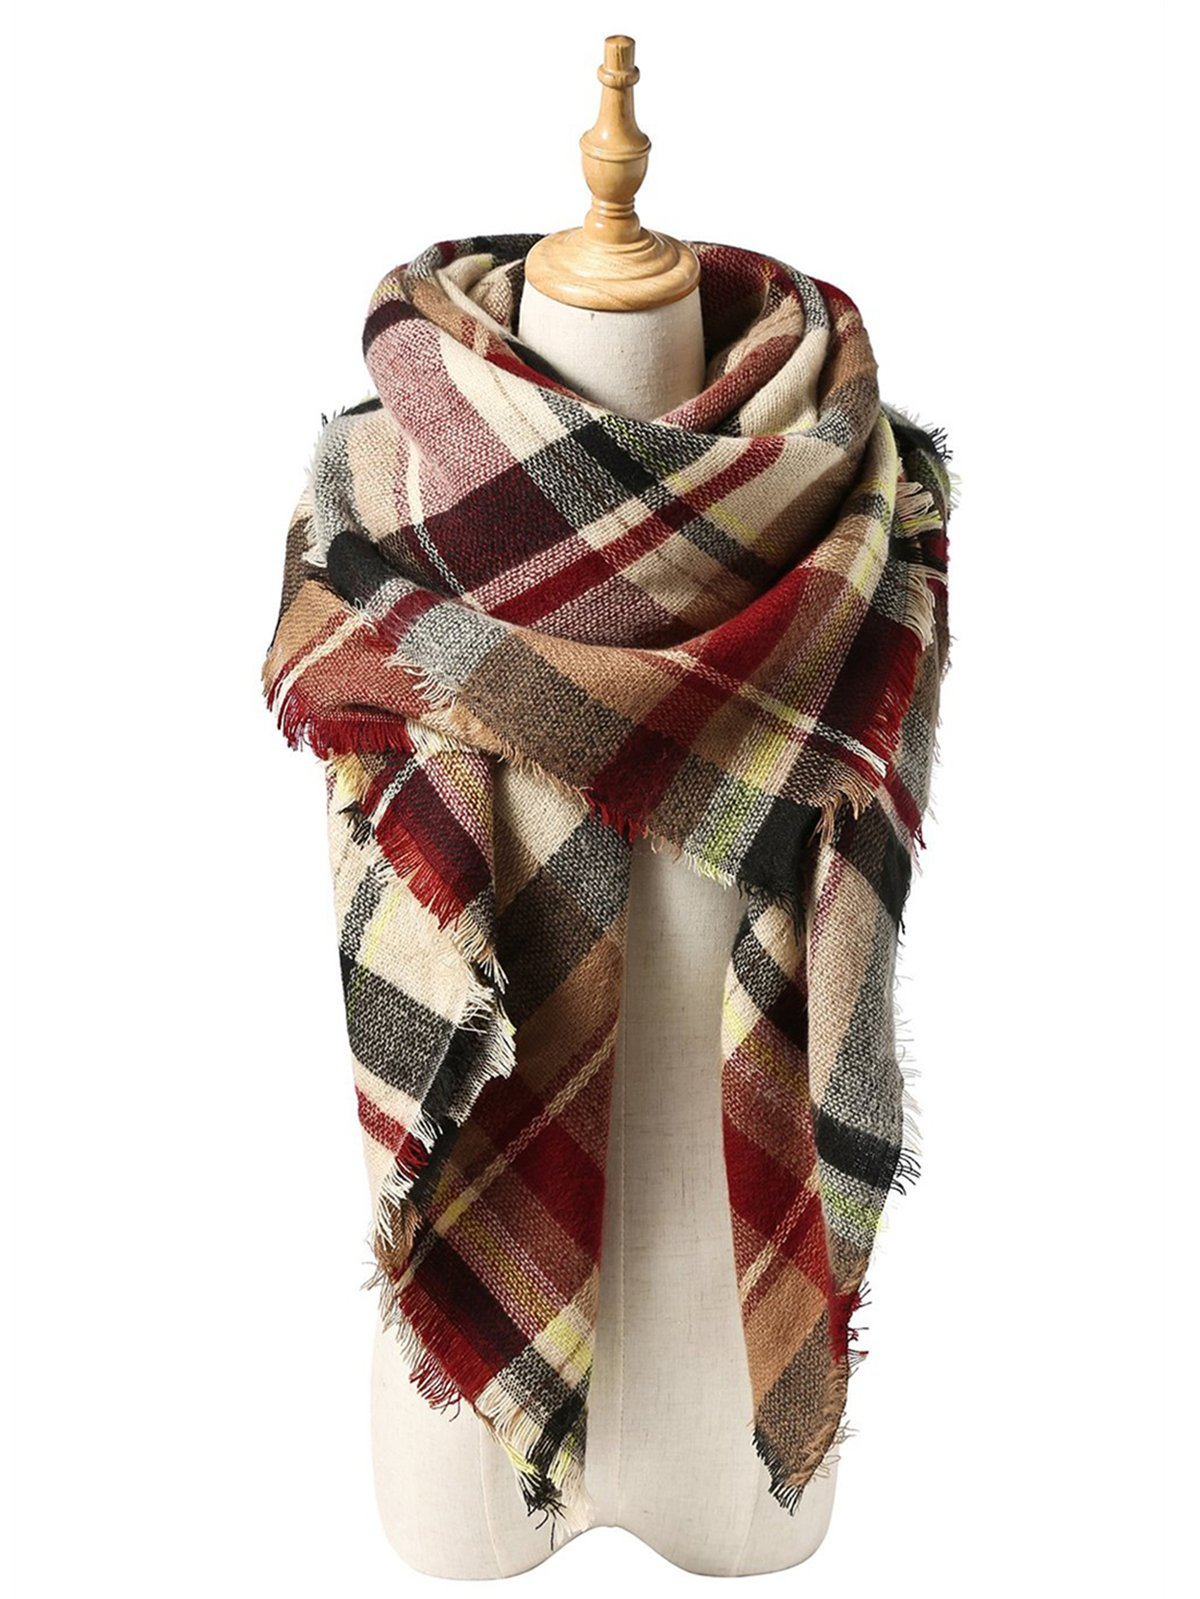 American Trends Women's Fall Winter Scarf, Classic Tassel Plaid, Warm Soft Chunky Blanket Wrap Shawl Scarves, Large, Pink